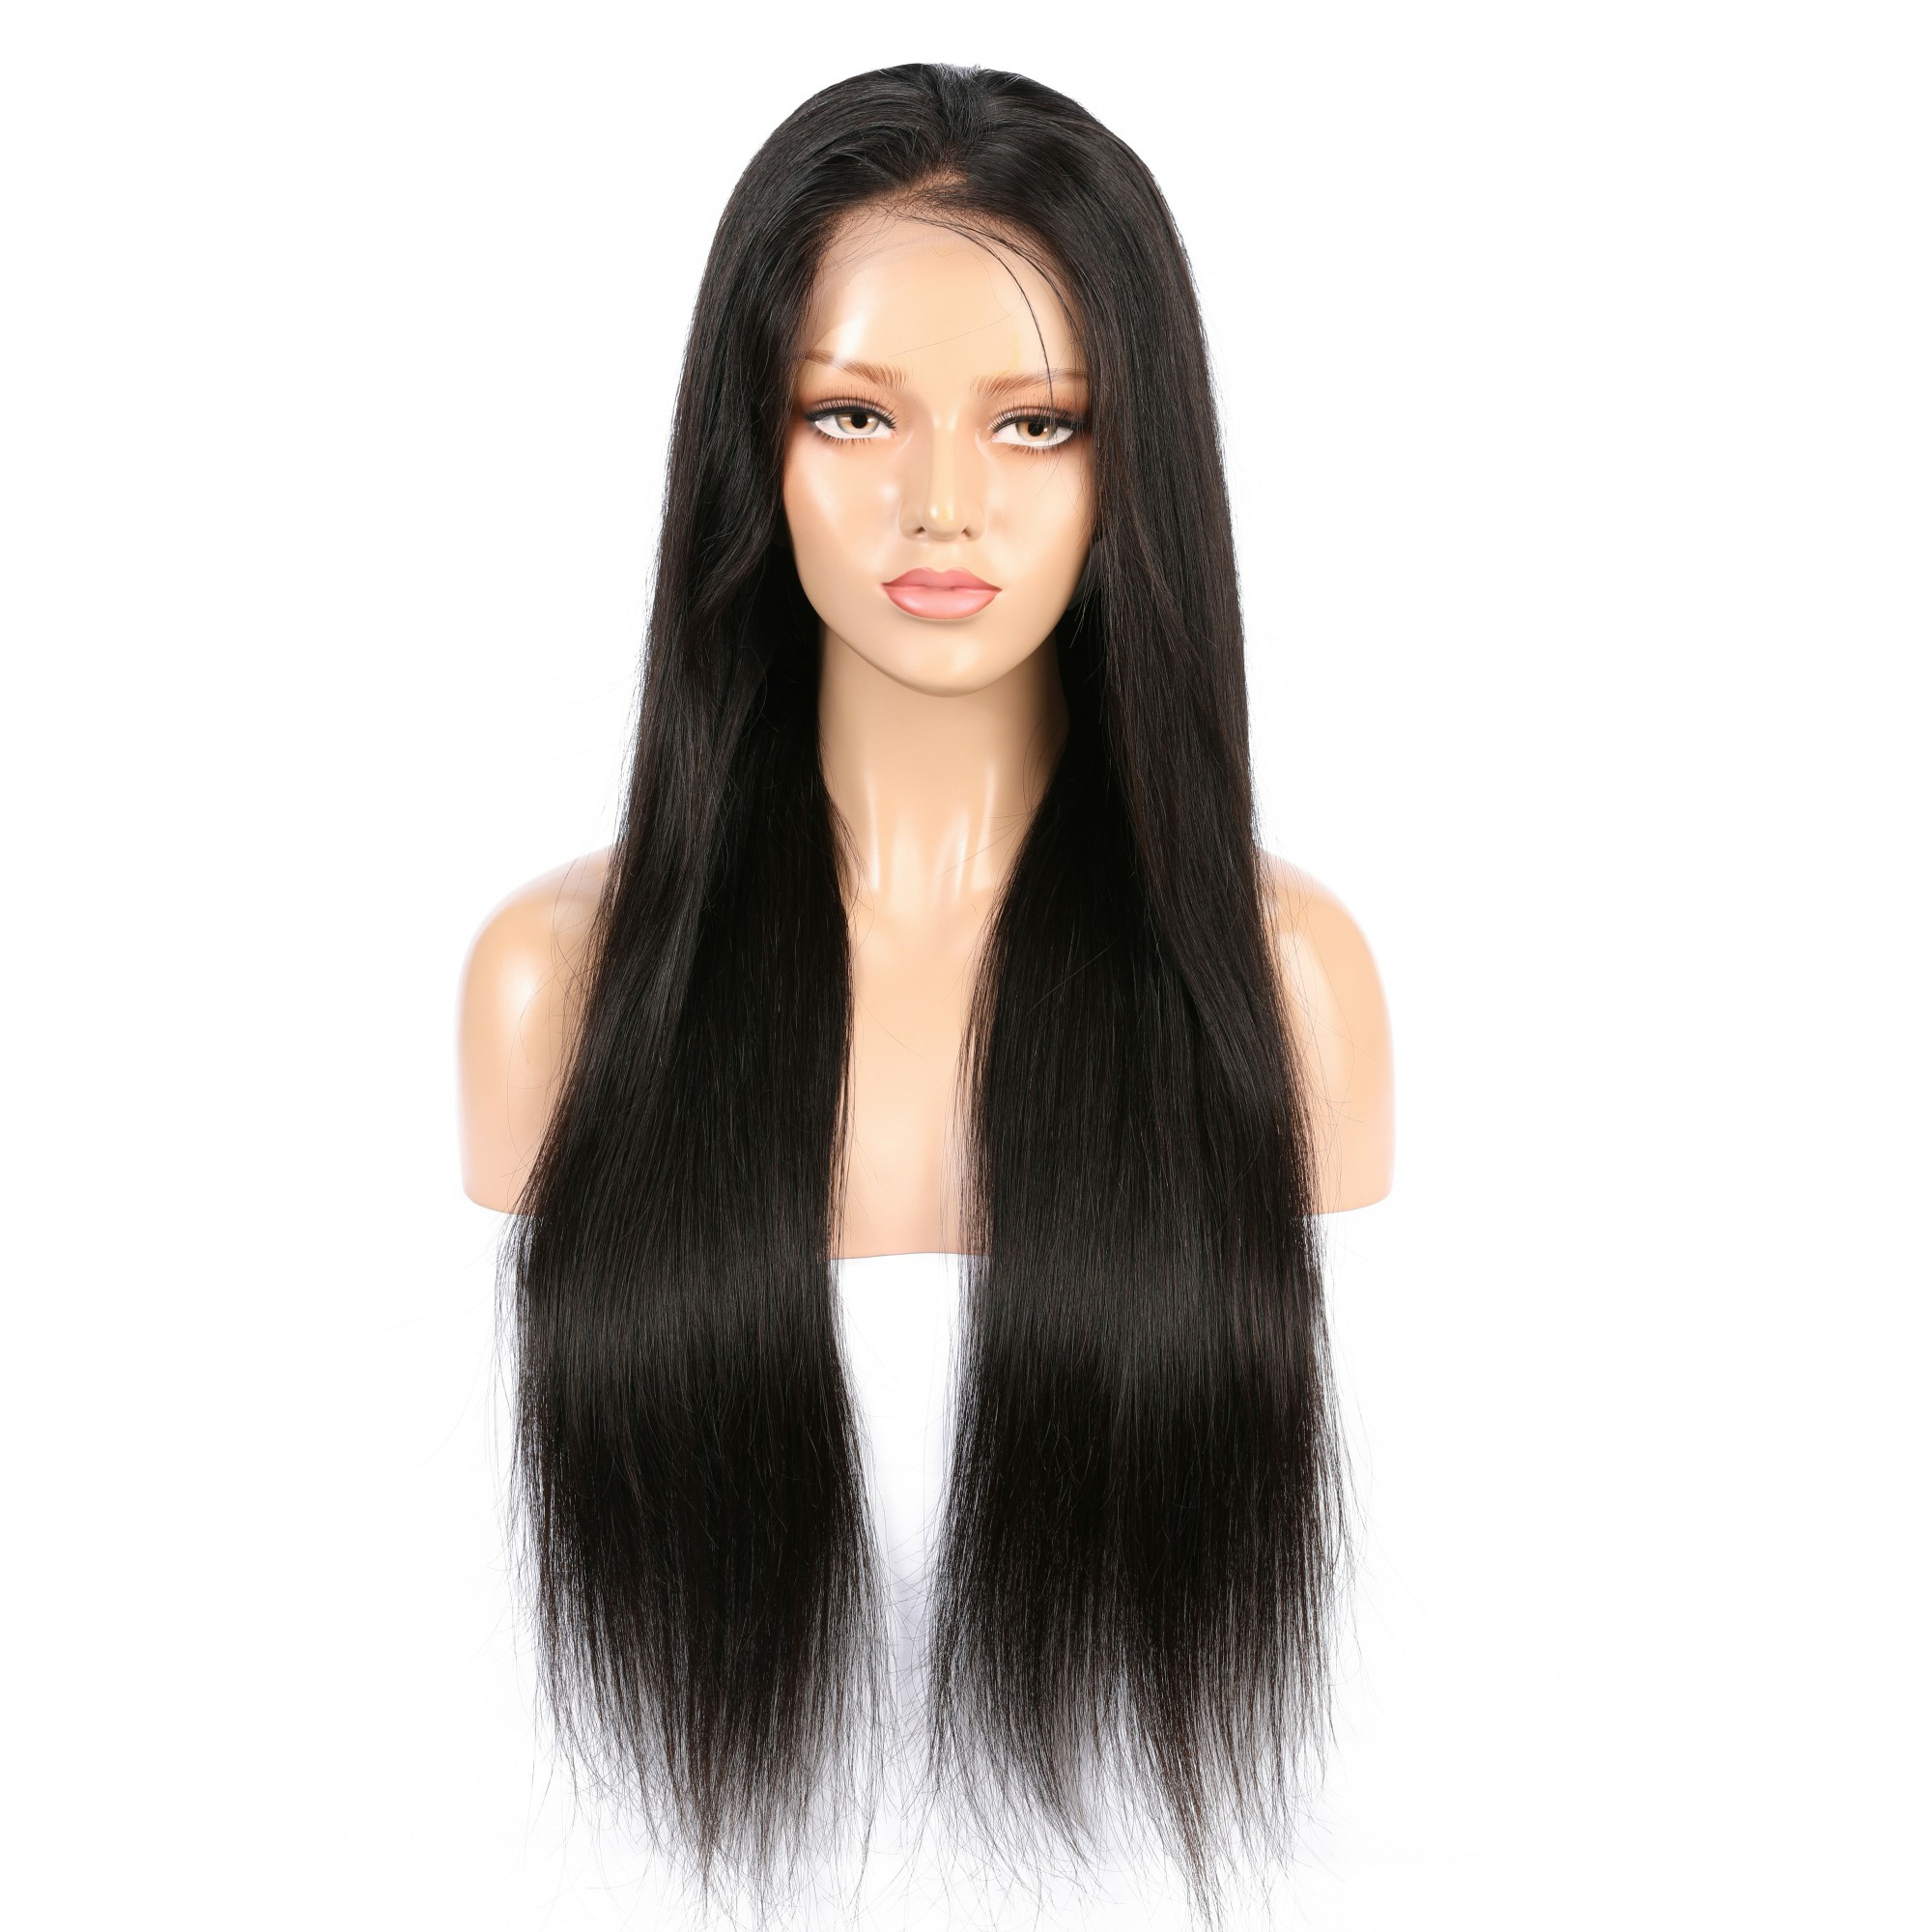 9A 13x4 Silky Straight Lace Front Human Hair Wigs For Black Women Remy Brazilian Hair Wig 10-24 Inch Available